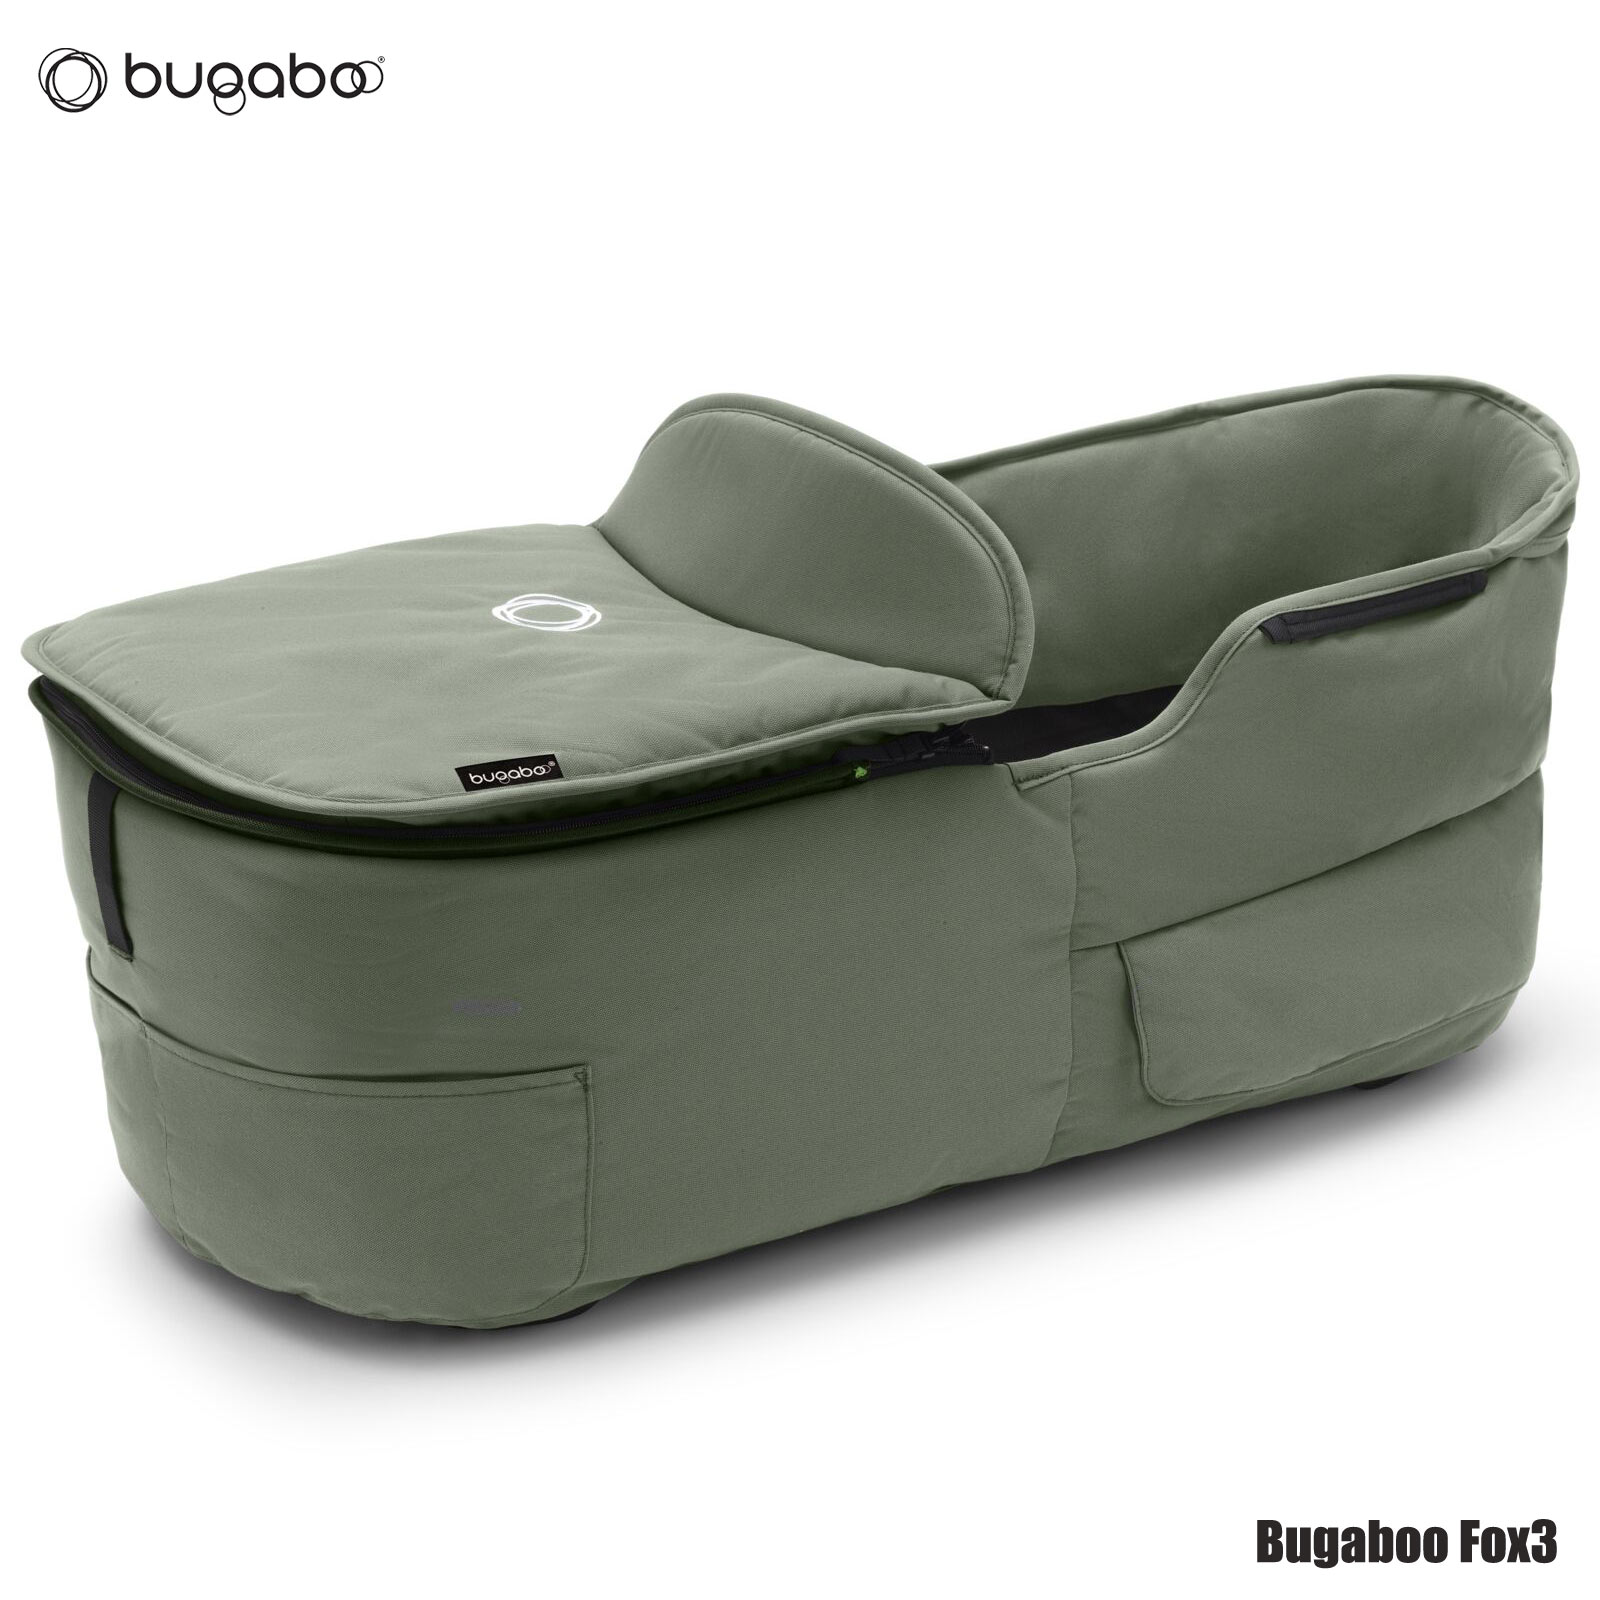 Bugaboo_Fox3_CarryCot_Forre_HCL.jpg